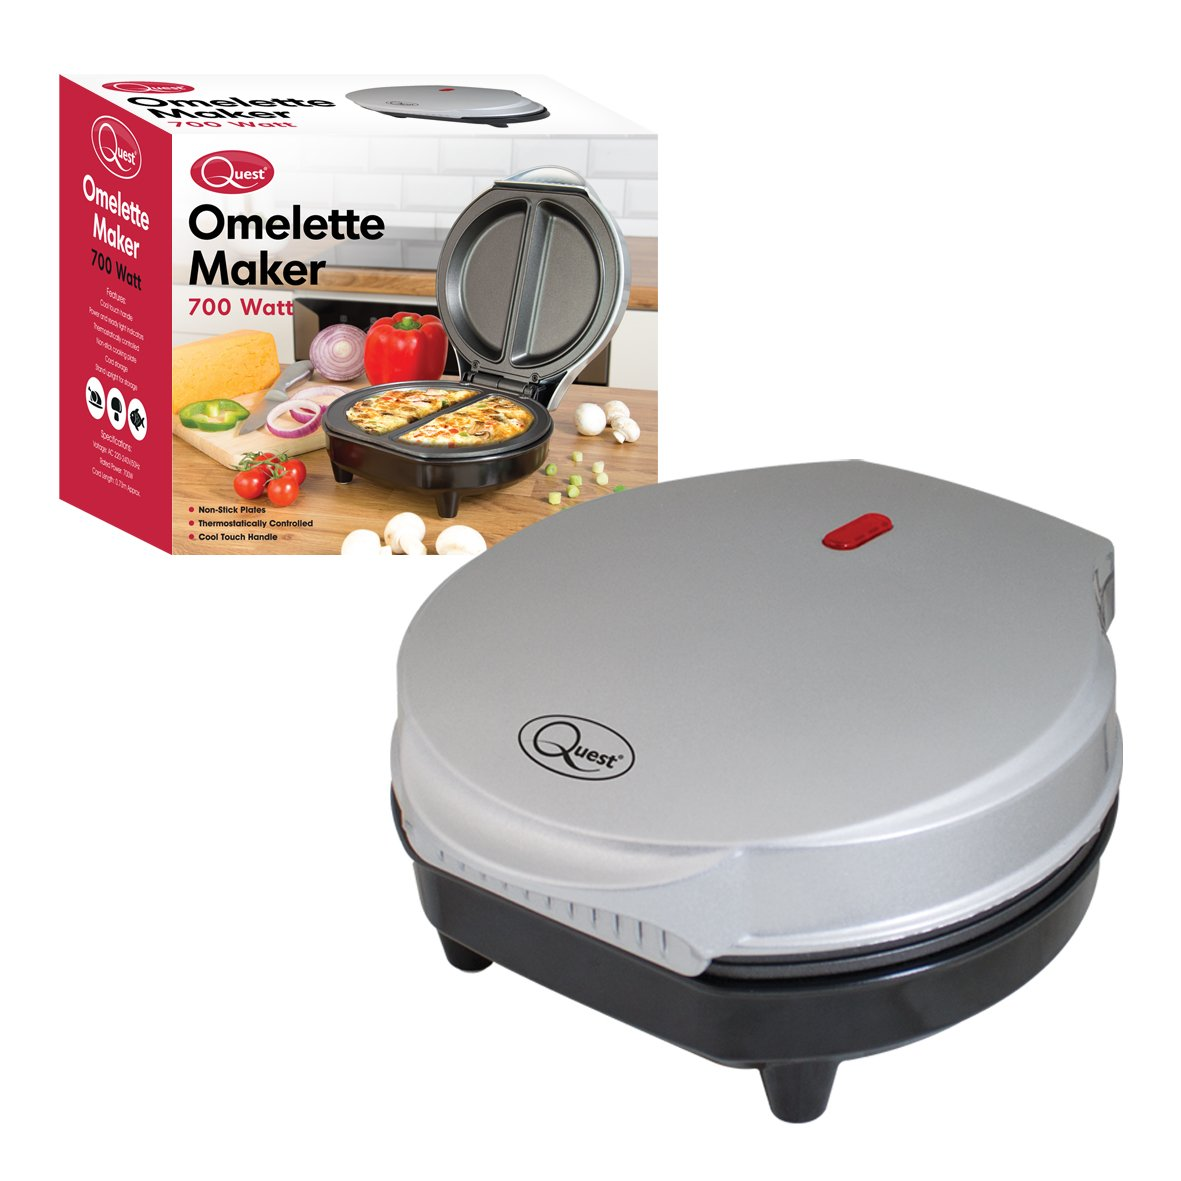 Quest Non-Stick Cool Touch Dual Omelet Maker, 700 W by Quest Benross Group 35640